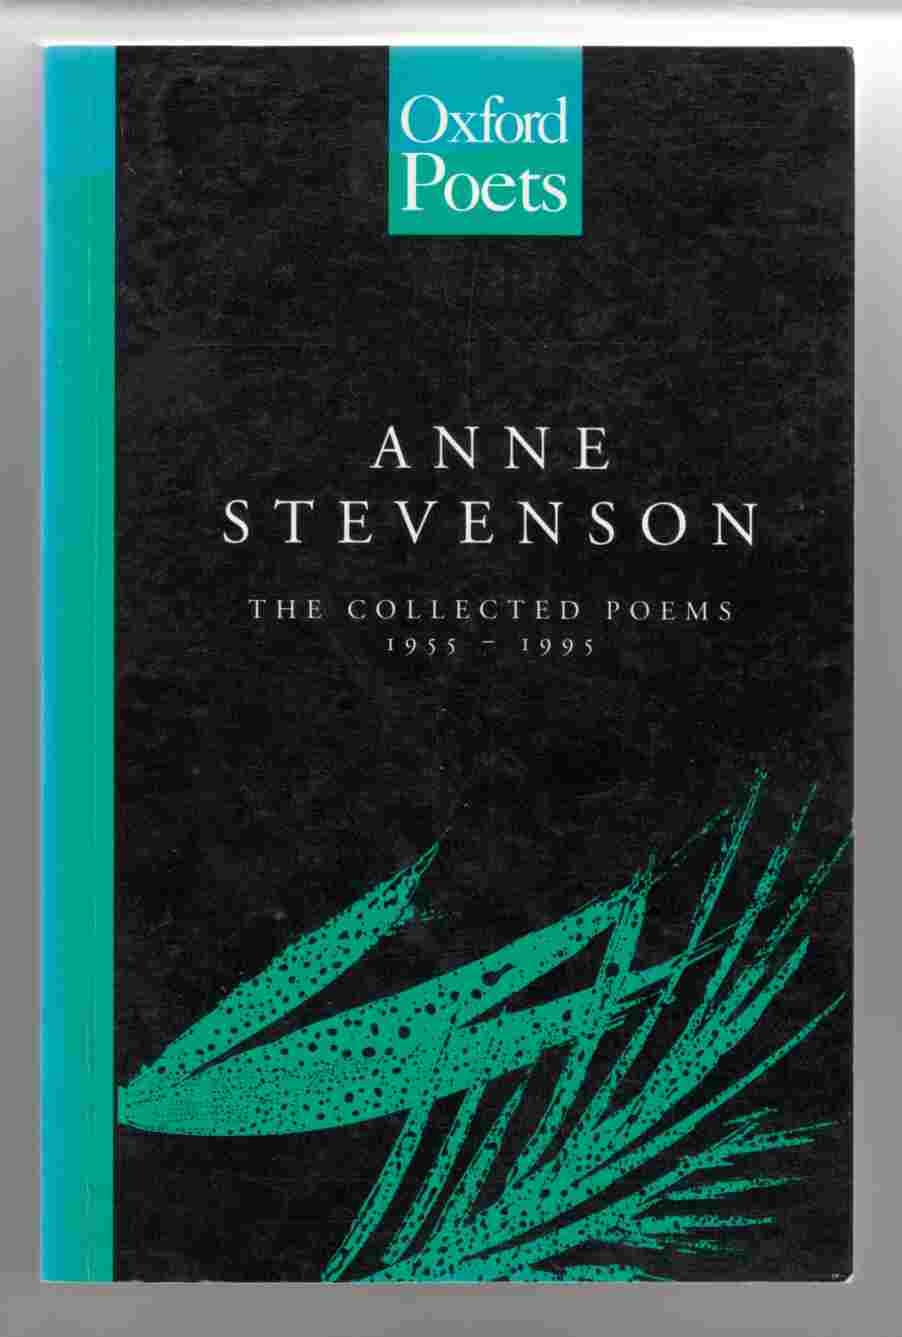 Image for The Collected Poems of Anne Stevenson 1955 - 1995